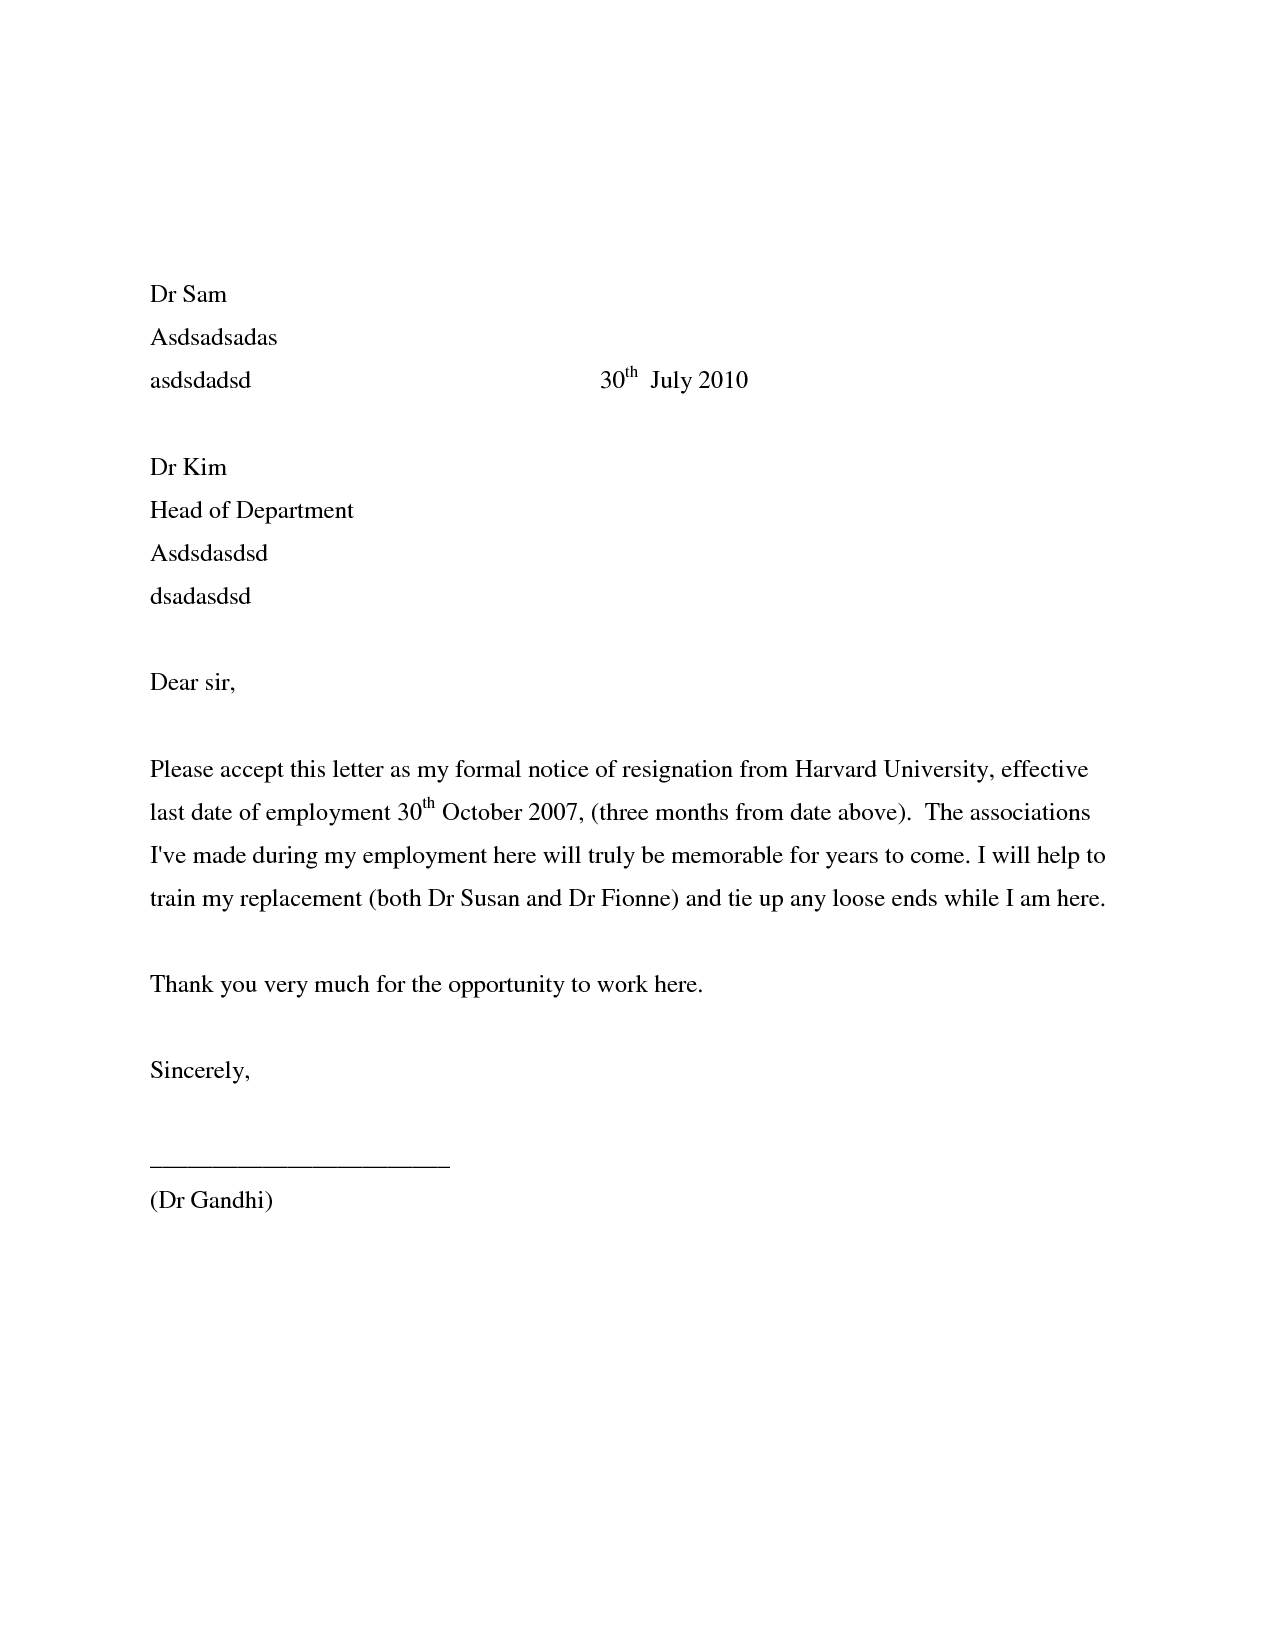 Simple Resignation Letters Examples SeeabruzzoWriting A Letter Of – Simple Resignation Letters